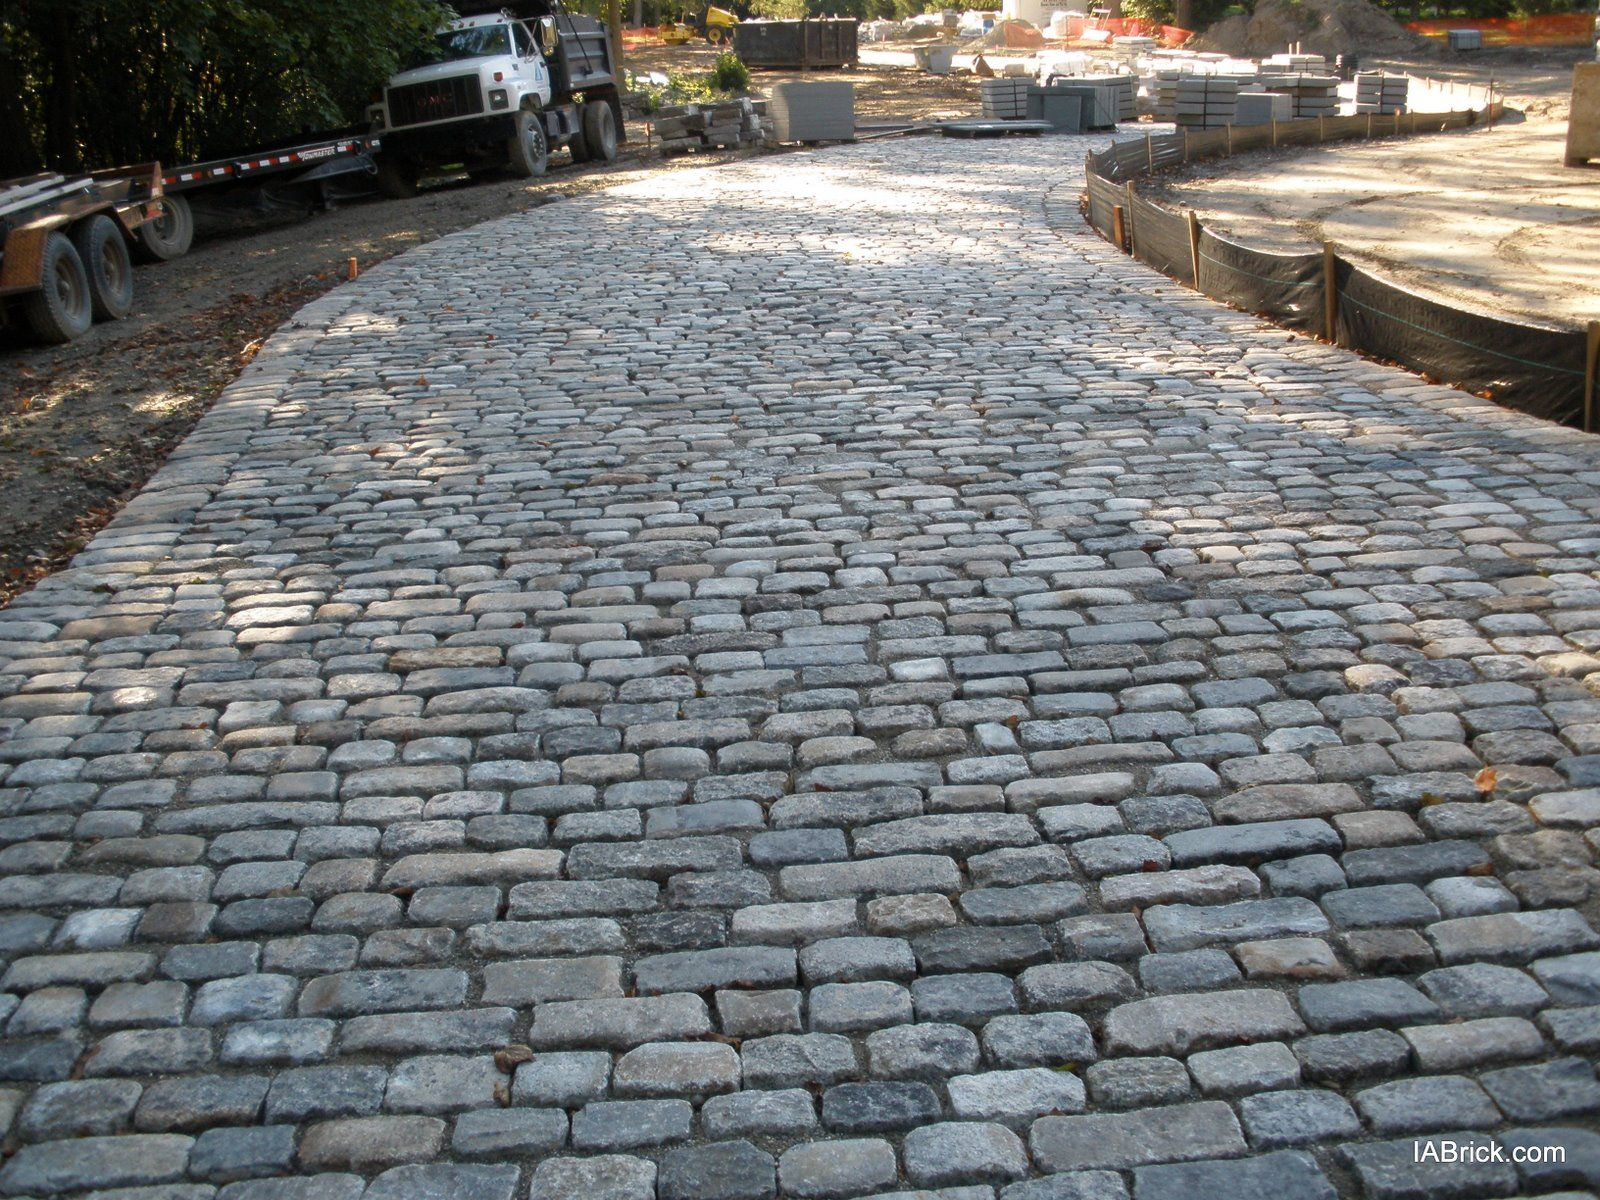 Cobblestone Stones For Driveways : Reclaimed cobblestone driveway homes i adore pinterest